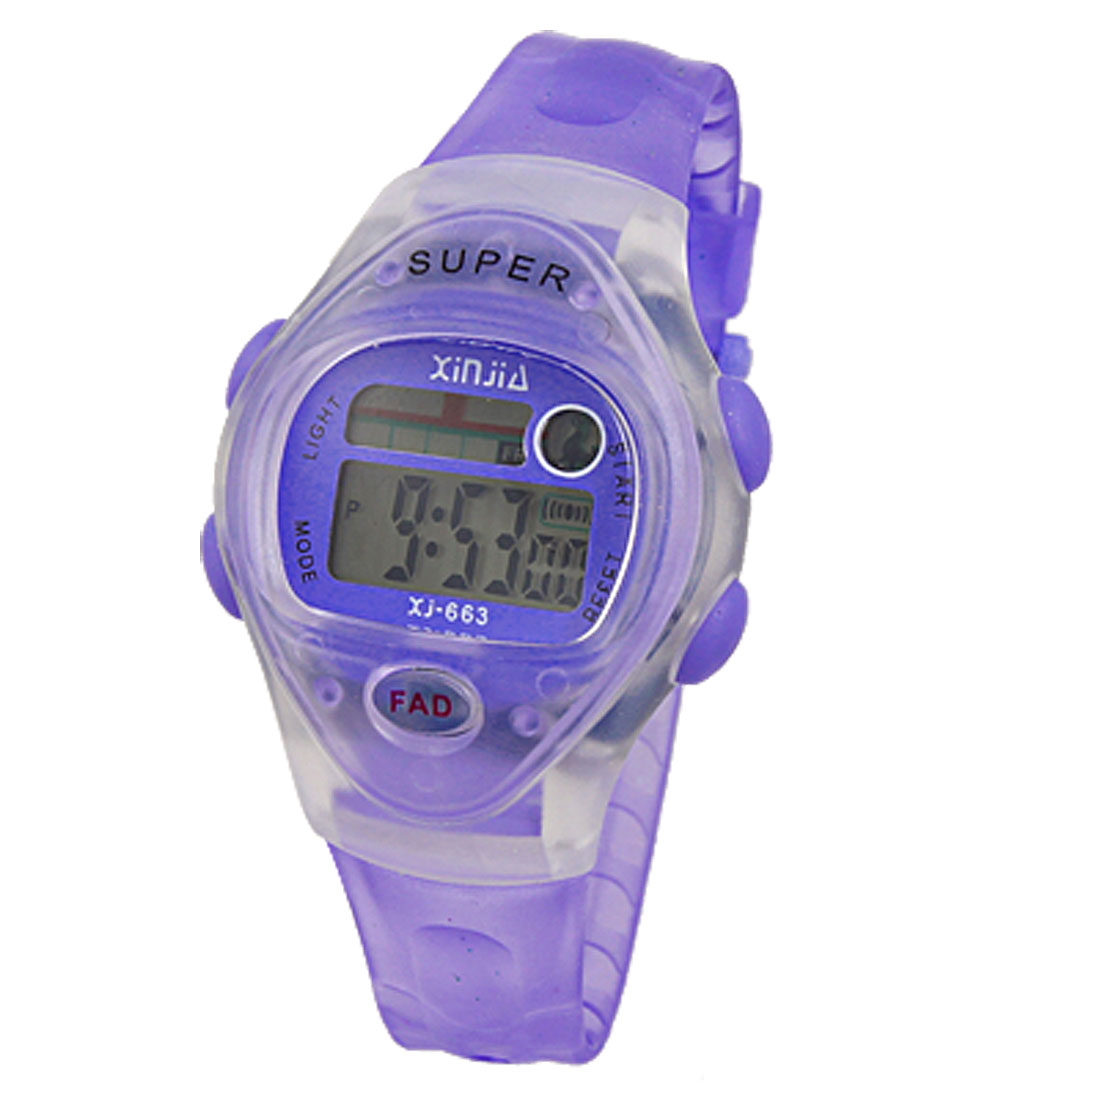 LCD Digital Display Alarm Stopwatch Clear Purple Sports Watch